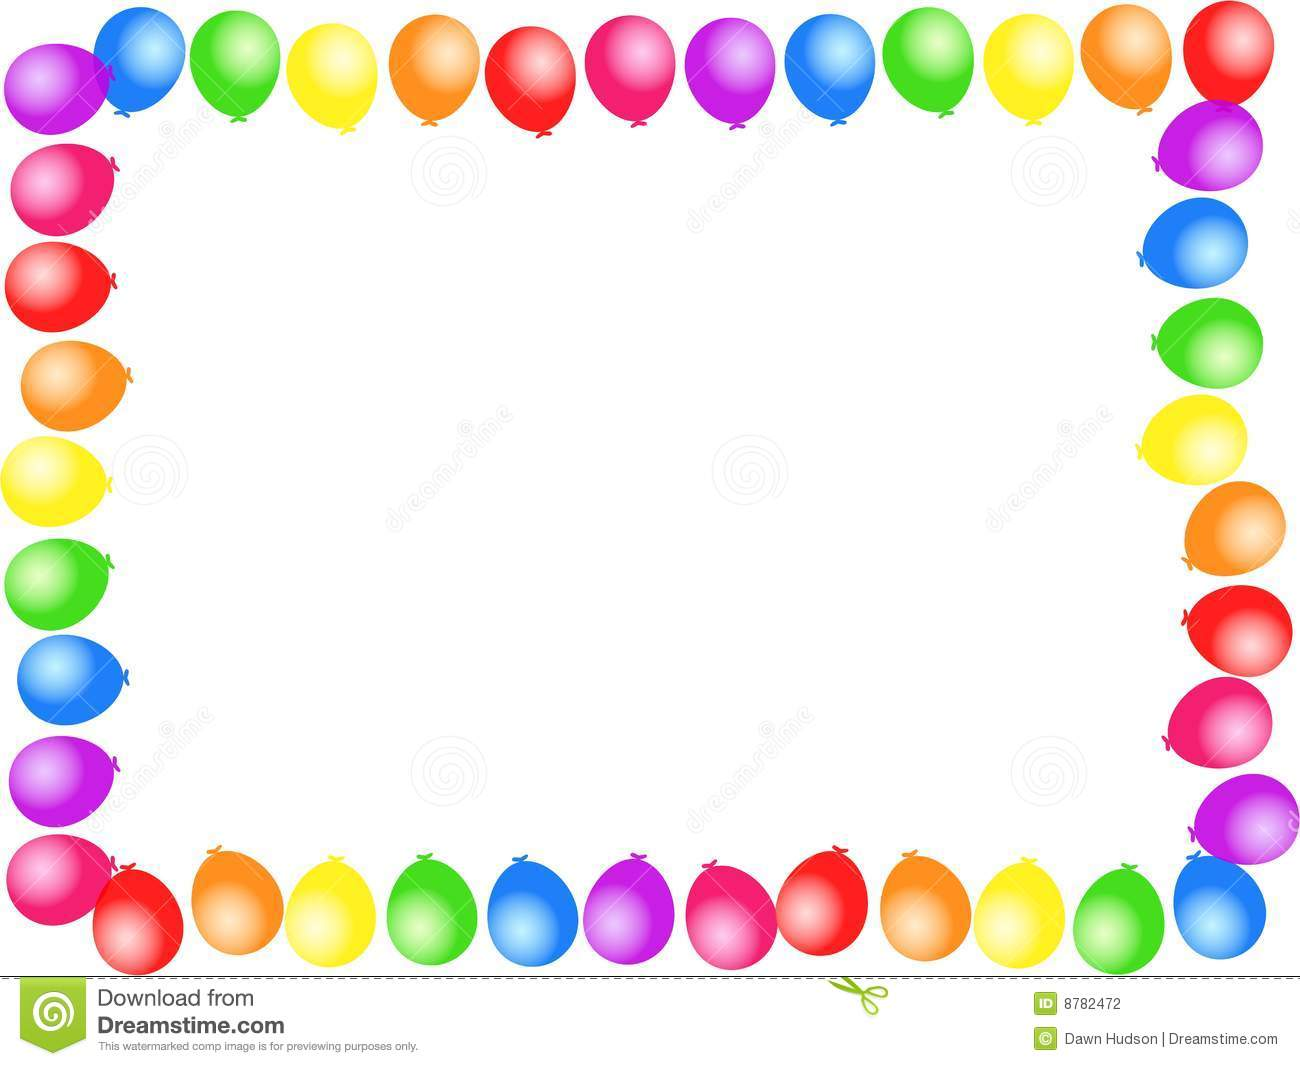 Halloween Party Borders Balloon Border 8782472 Jpg